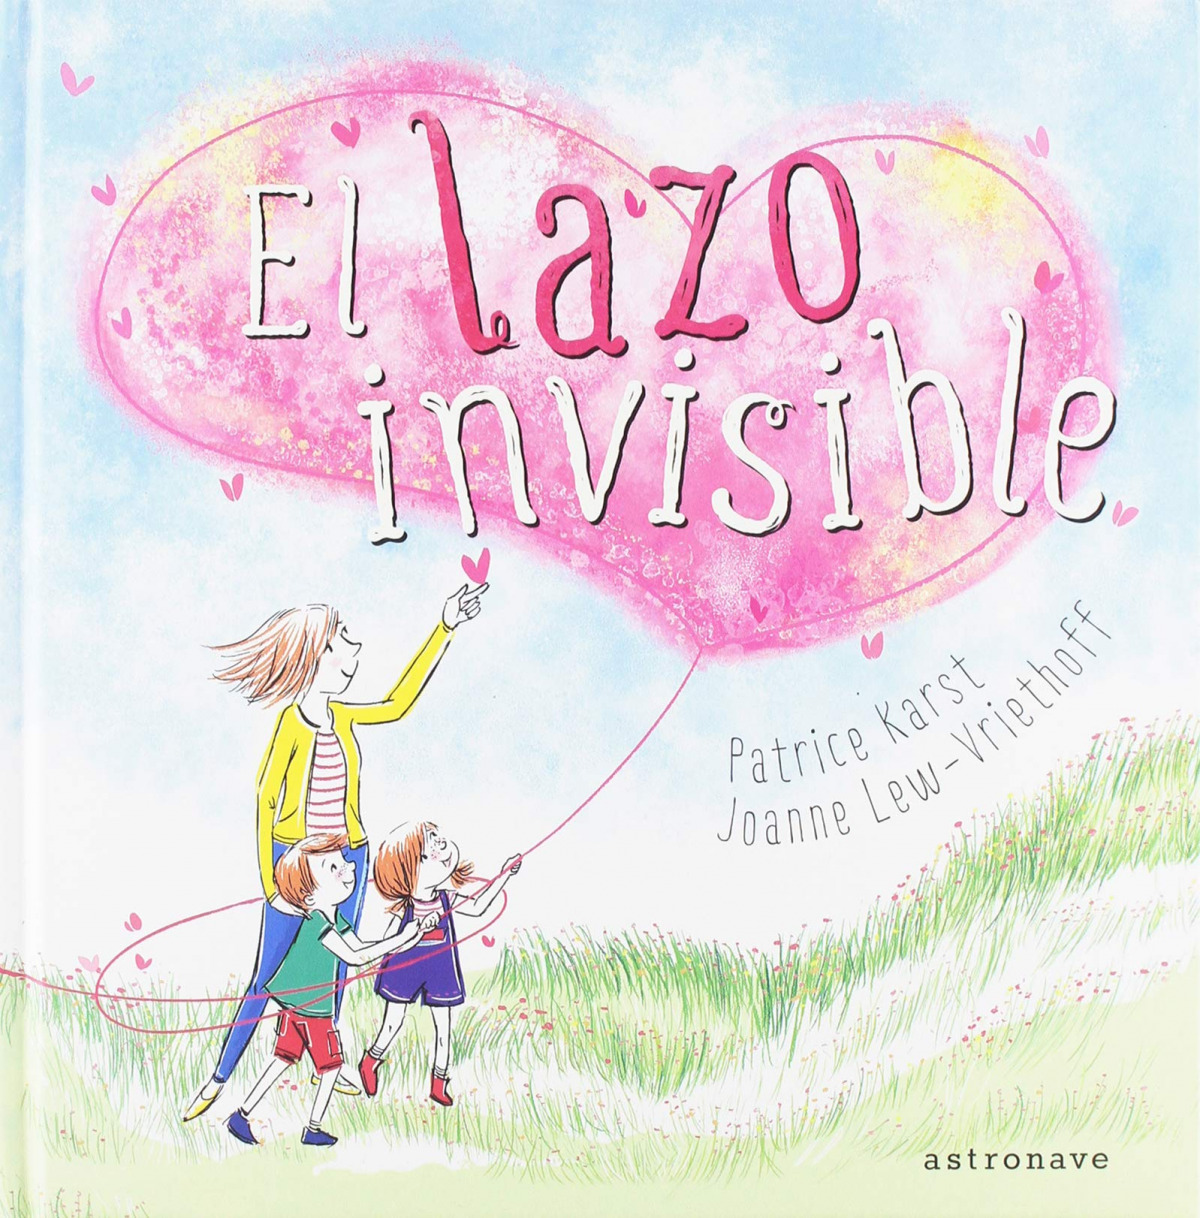 EL LAZO INVISIBLE